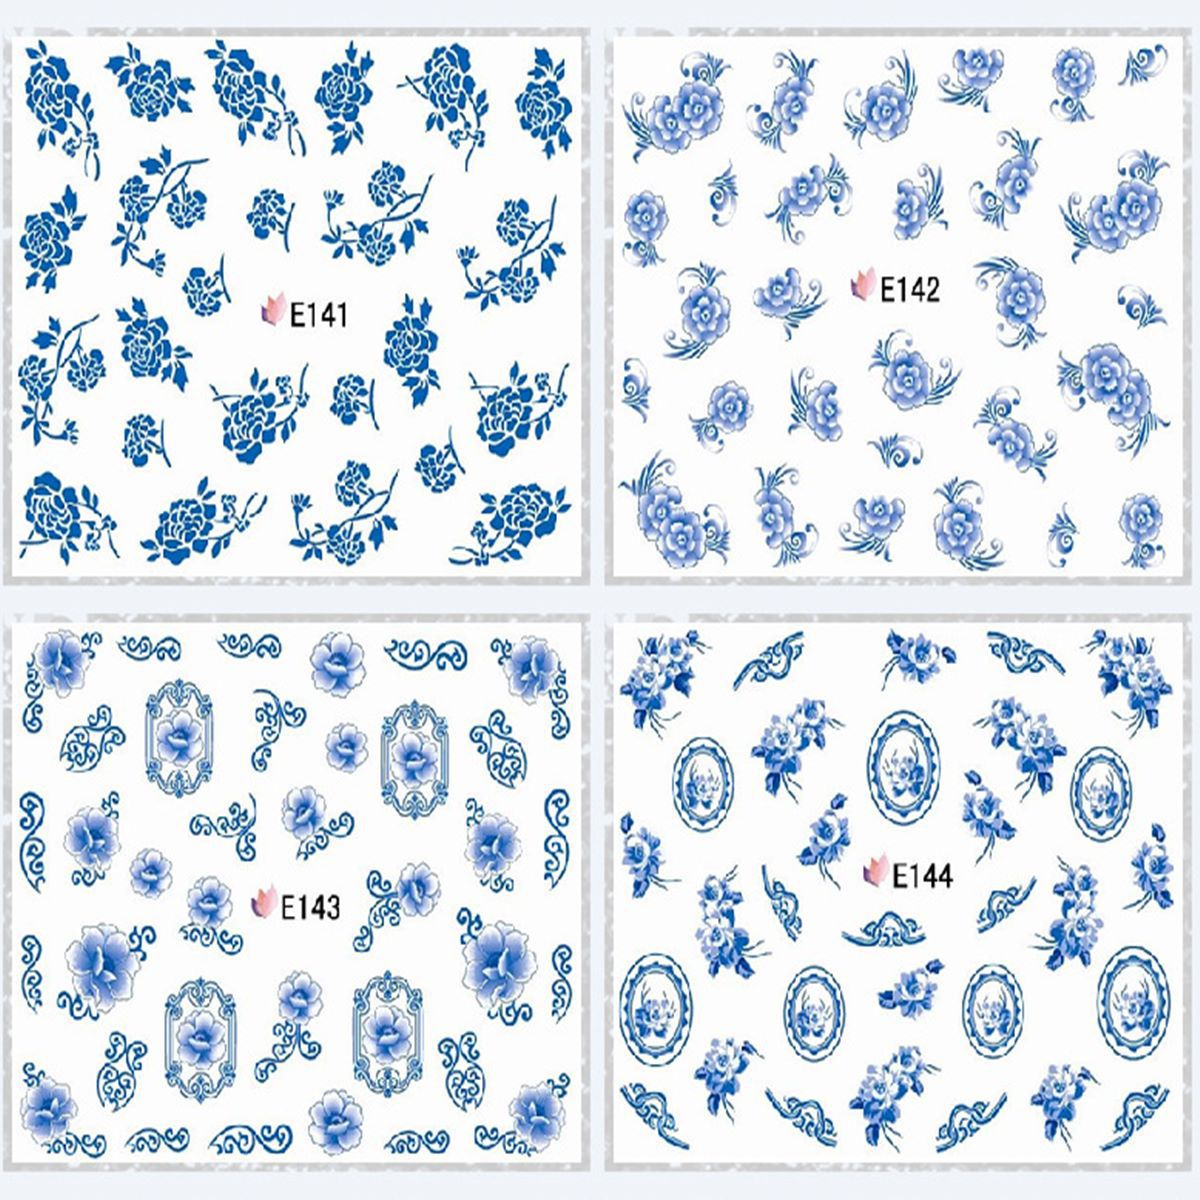 E105-159 Series 3D Suspender Strap Glue Nail Sticker Model Blue And White Porcelain Flower Nail Sticker Black Flower Adhesive Pa